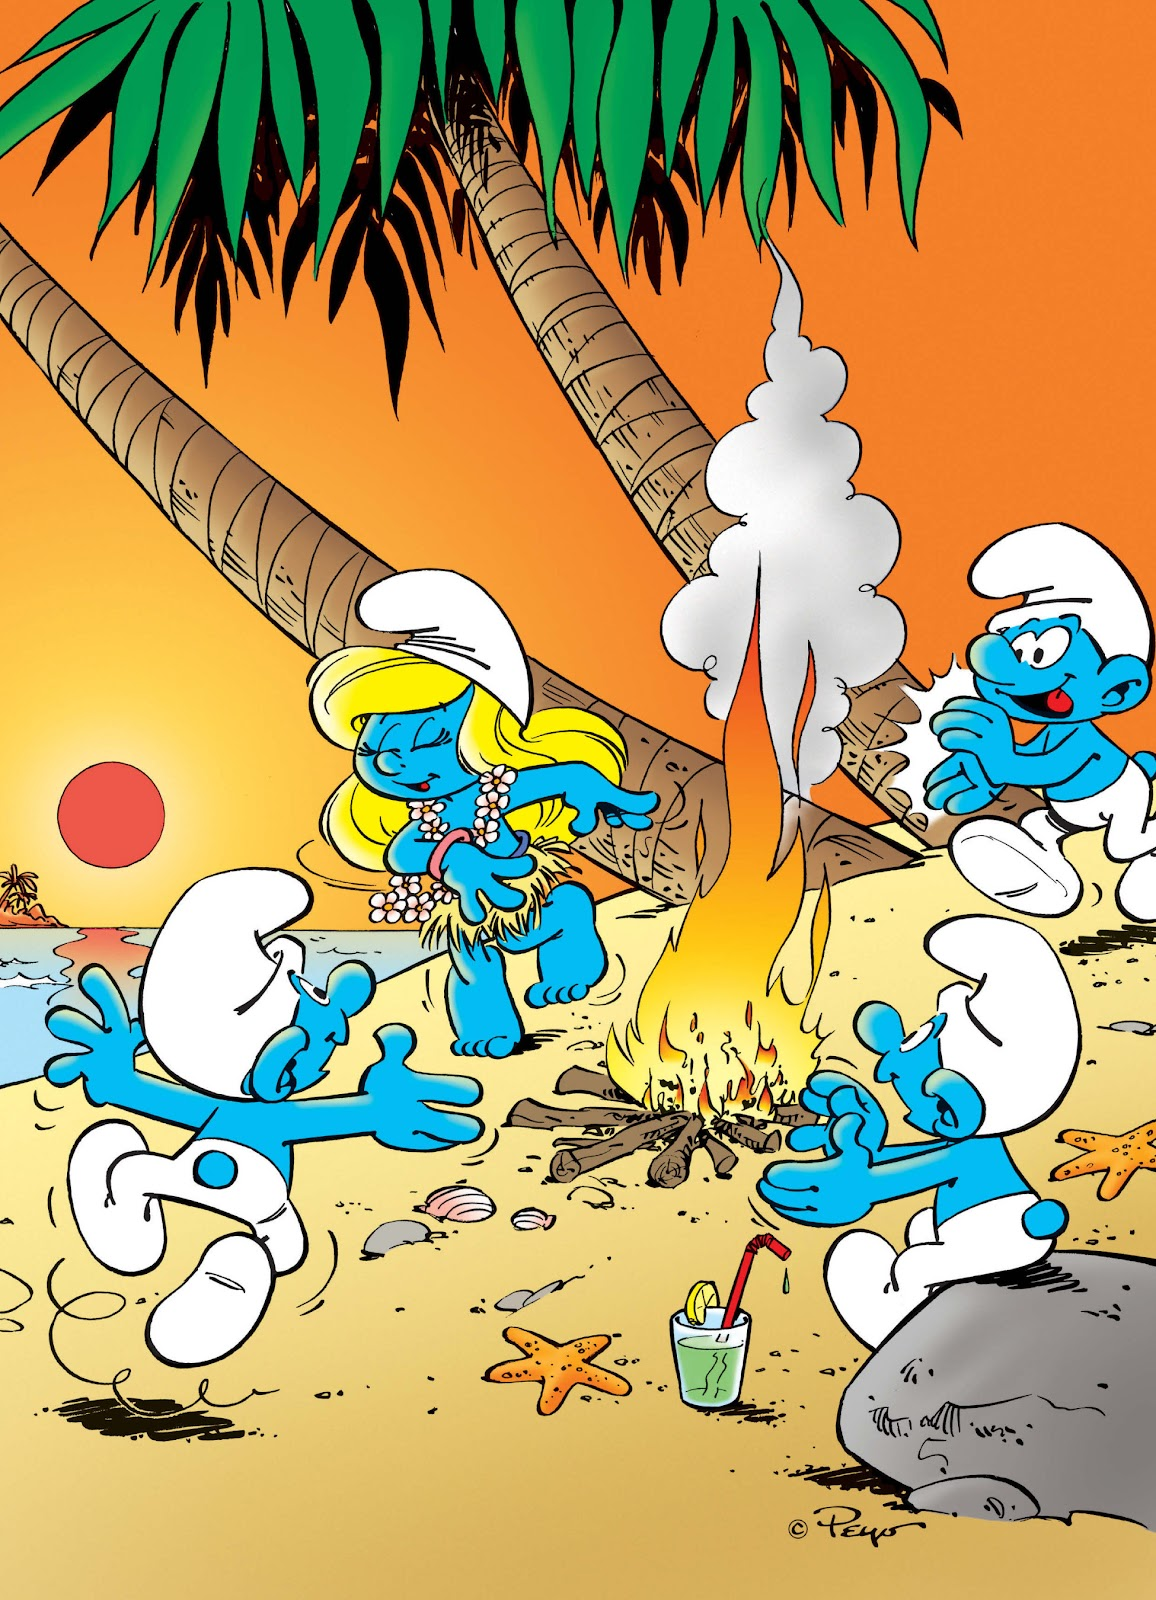 Read online The Smurfs comic -  Issue #17 - 42